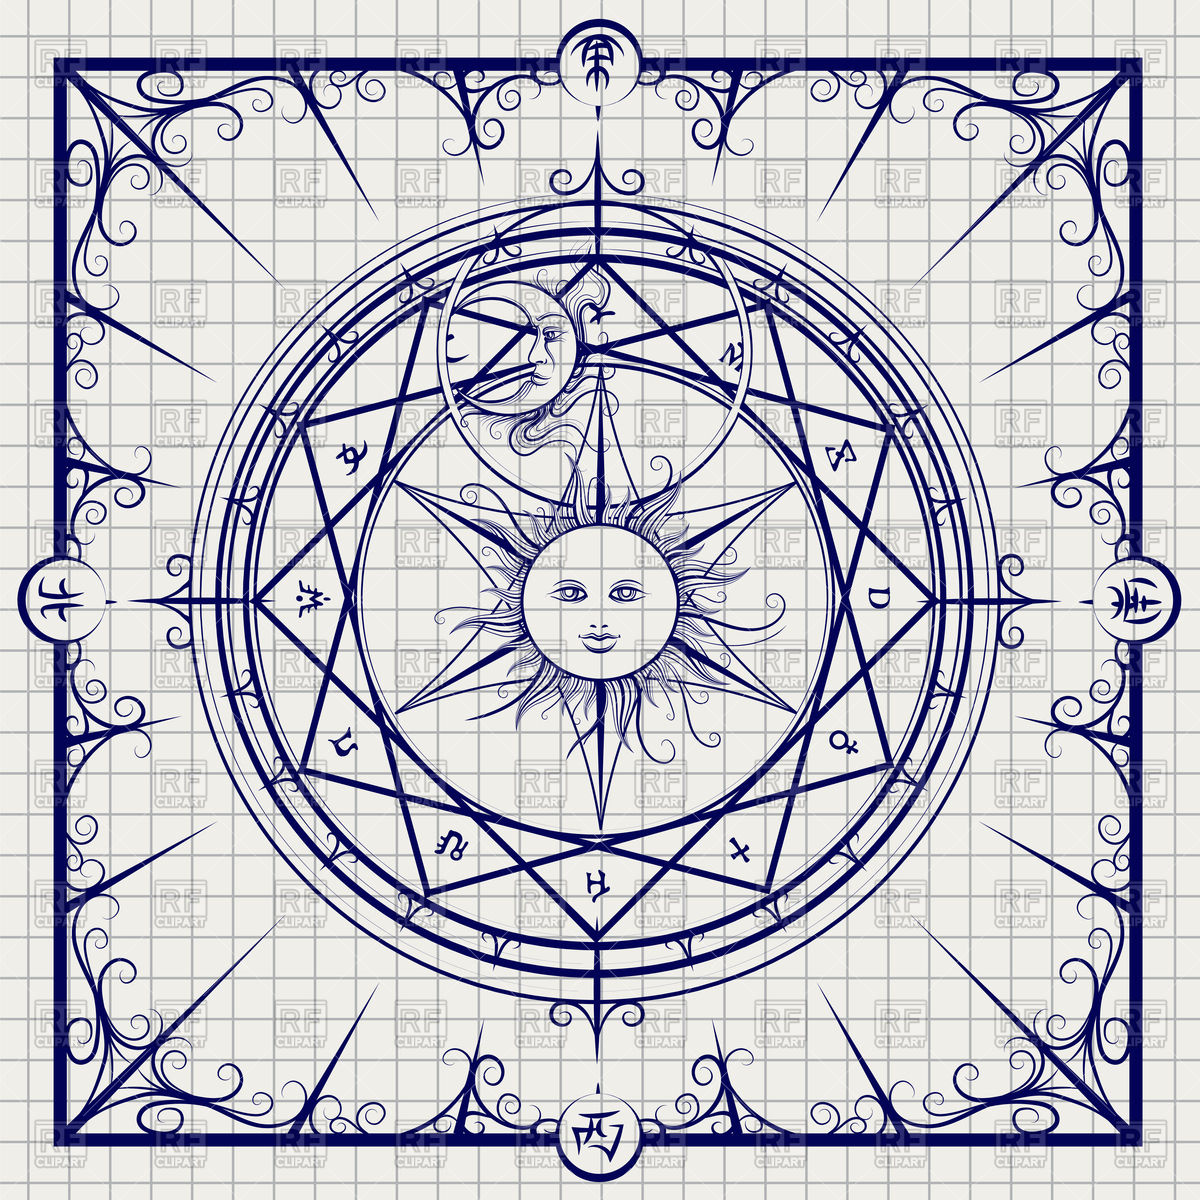 1200x1200 Sketch Of Alchemy Magic Circle On Notebook Page Royalty Free